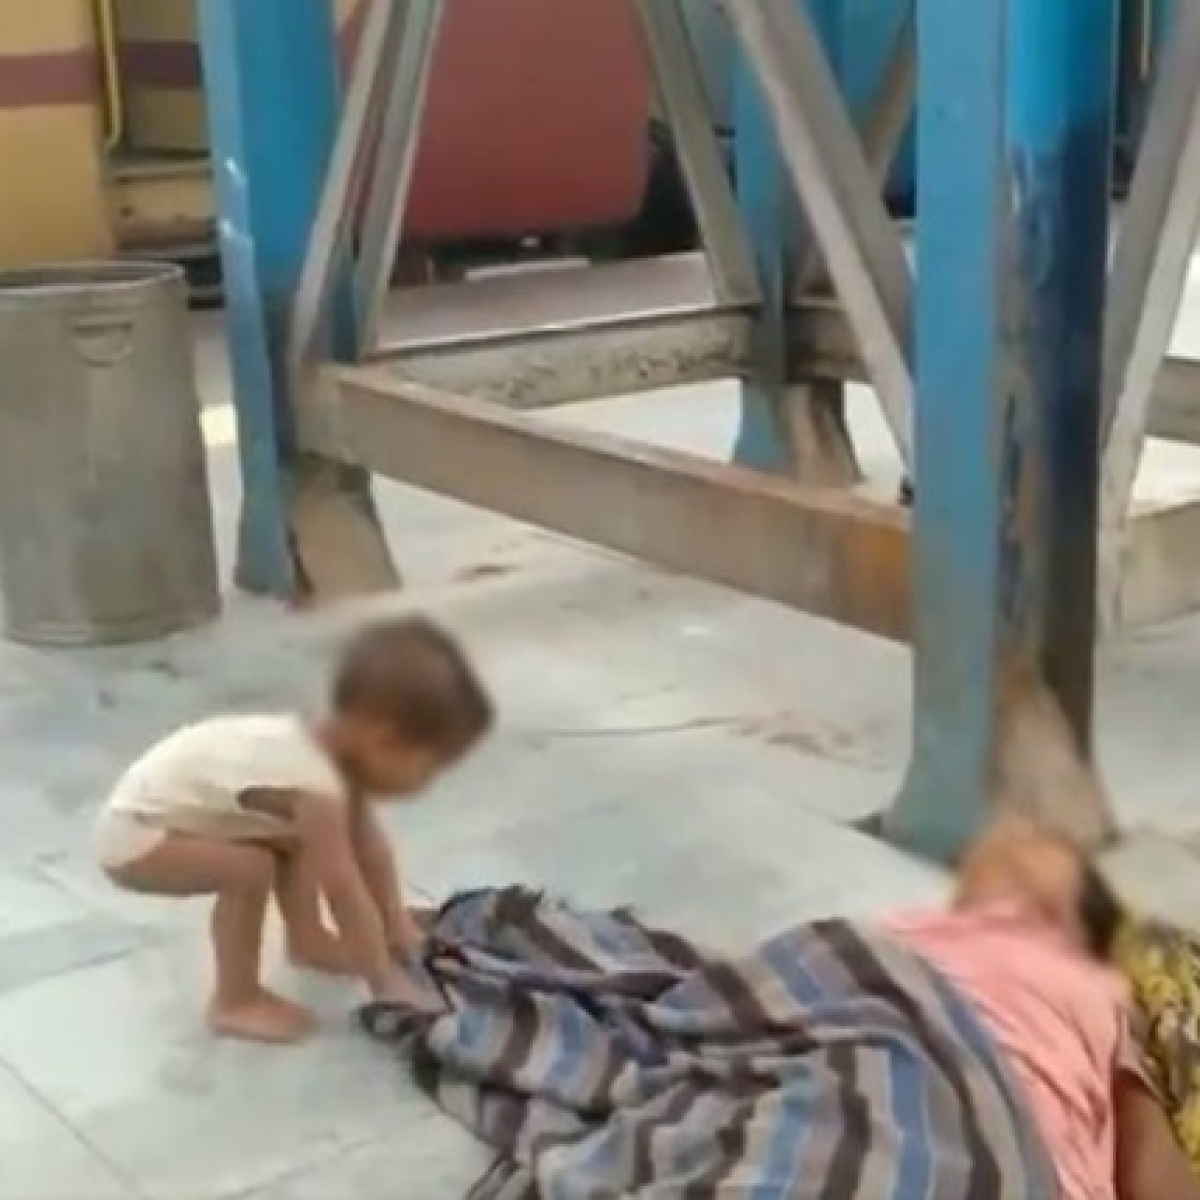 Baby playing with dead mother's shroud: Full story of viral video that will shame humanity